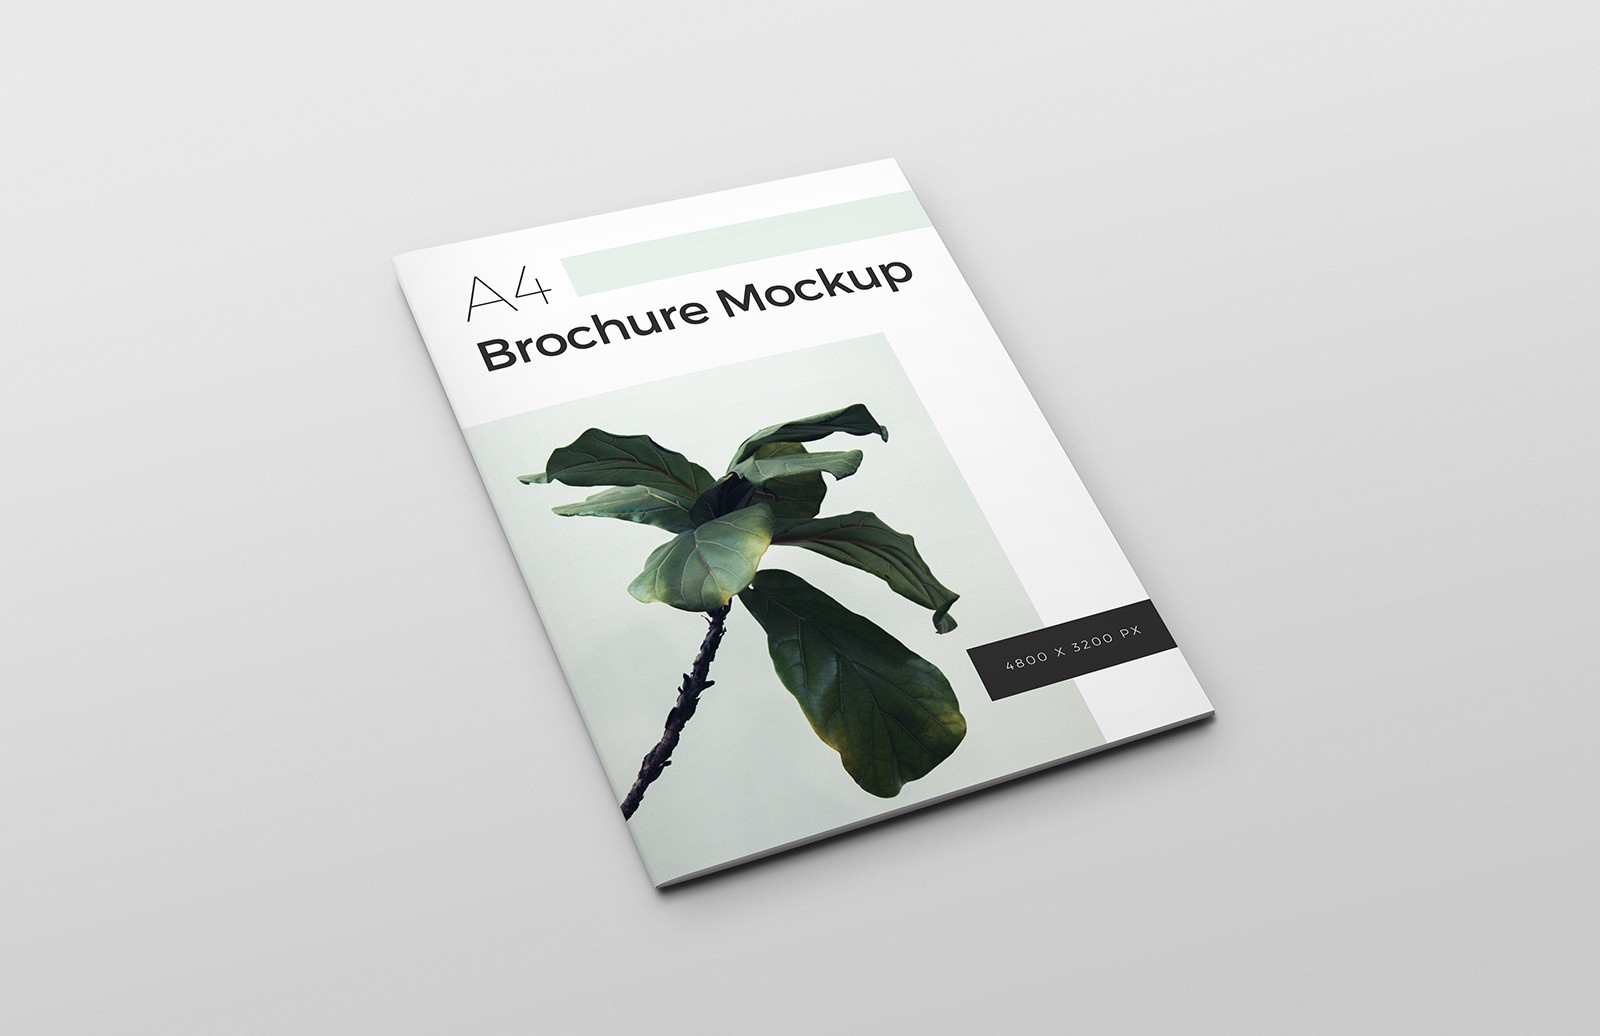 Free A4 Brochure Mockup For Photoshop Medialoot